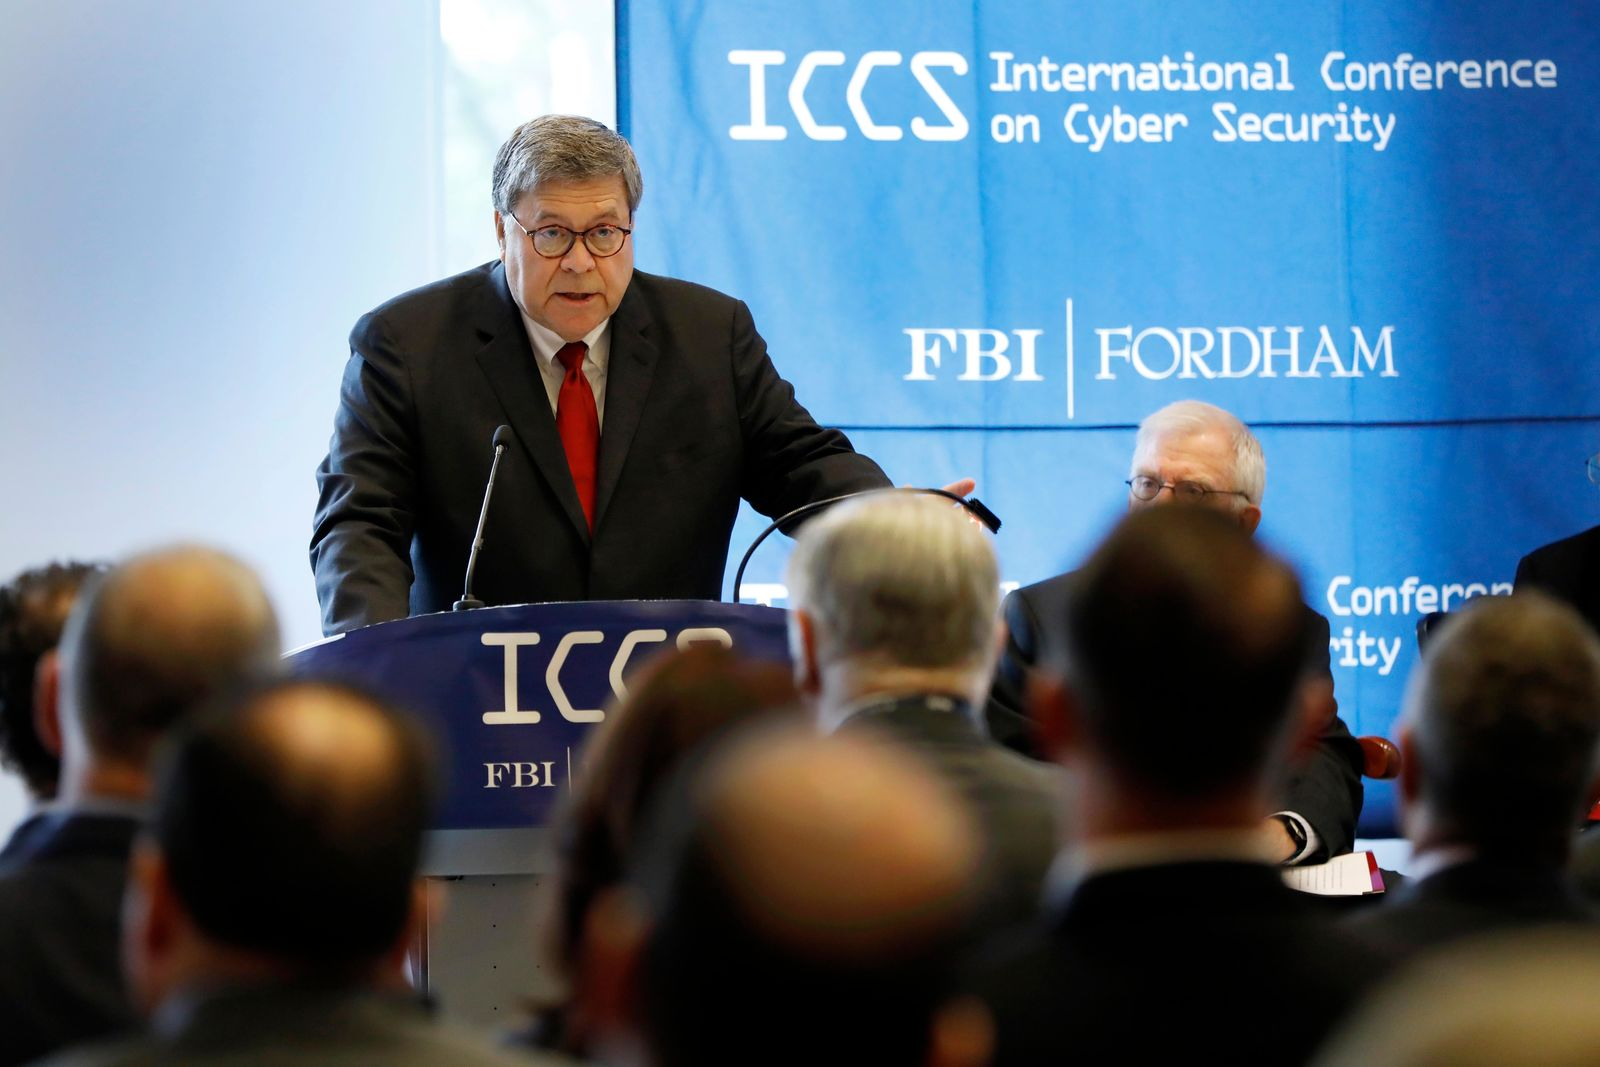 U.S. Attorney General William Barr addresses the International Conference on Cyber Security, hosted by the FBI and Fordham University, at Fordham University in New York, Tuesday, July 23, 2019. (AP Photo/Richard Drew)